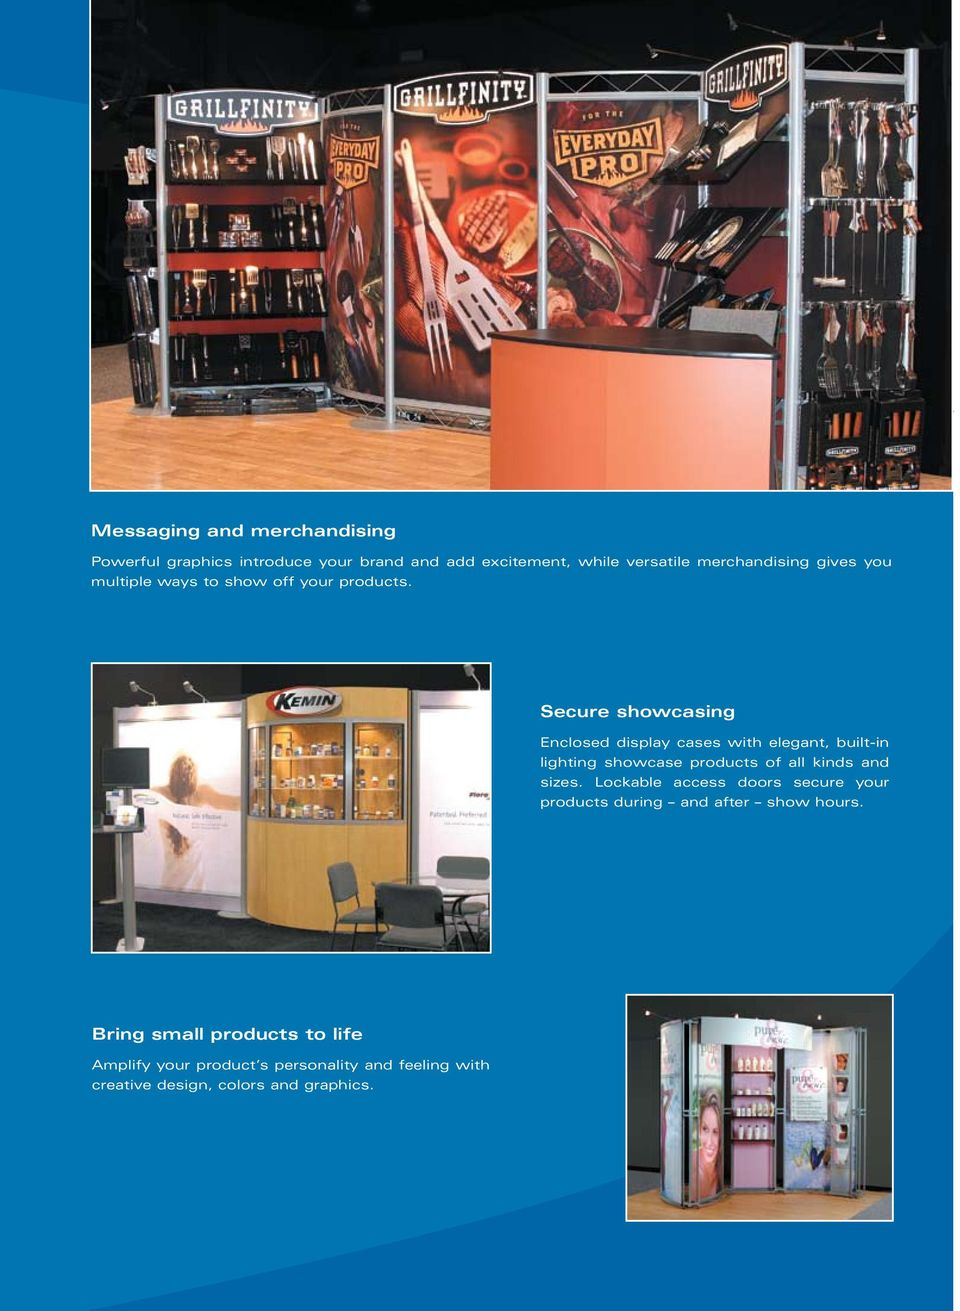 Secure showcasing Enclosed display cases with elegant, built-in lighting showcase products of all kinds and sizes.